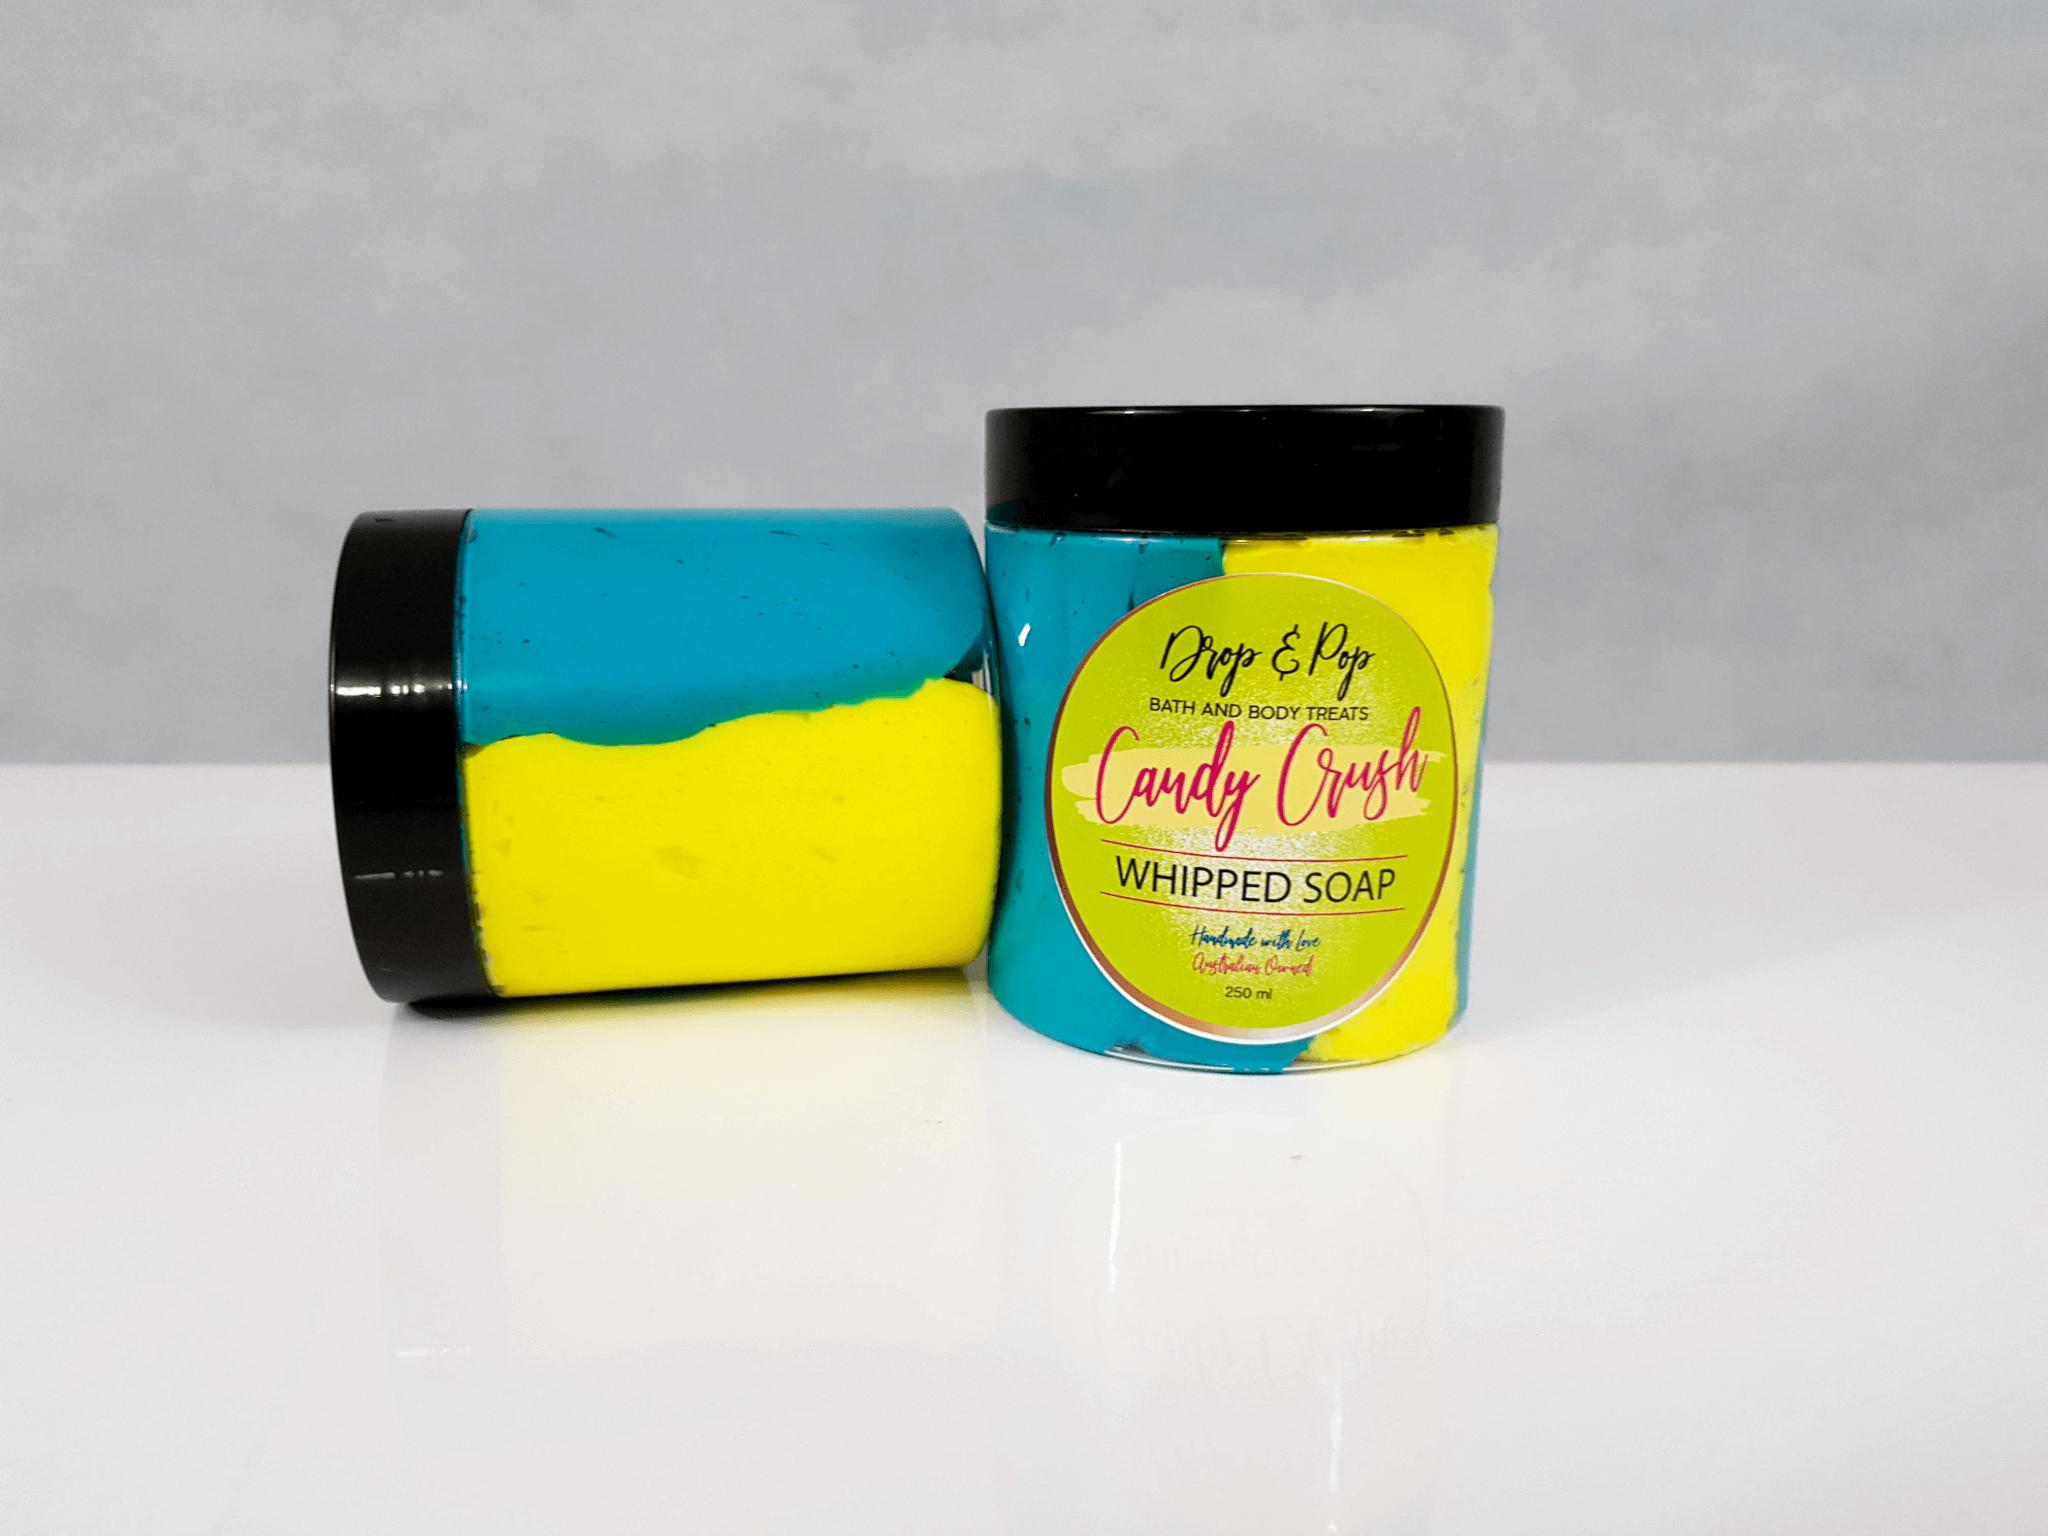 Candy Crush Luxury Whipped Soap